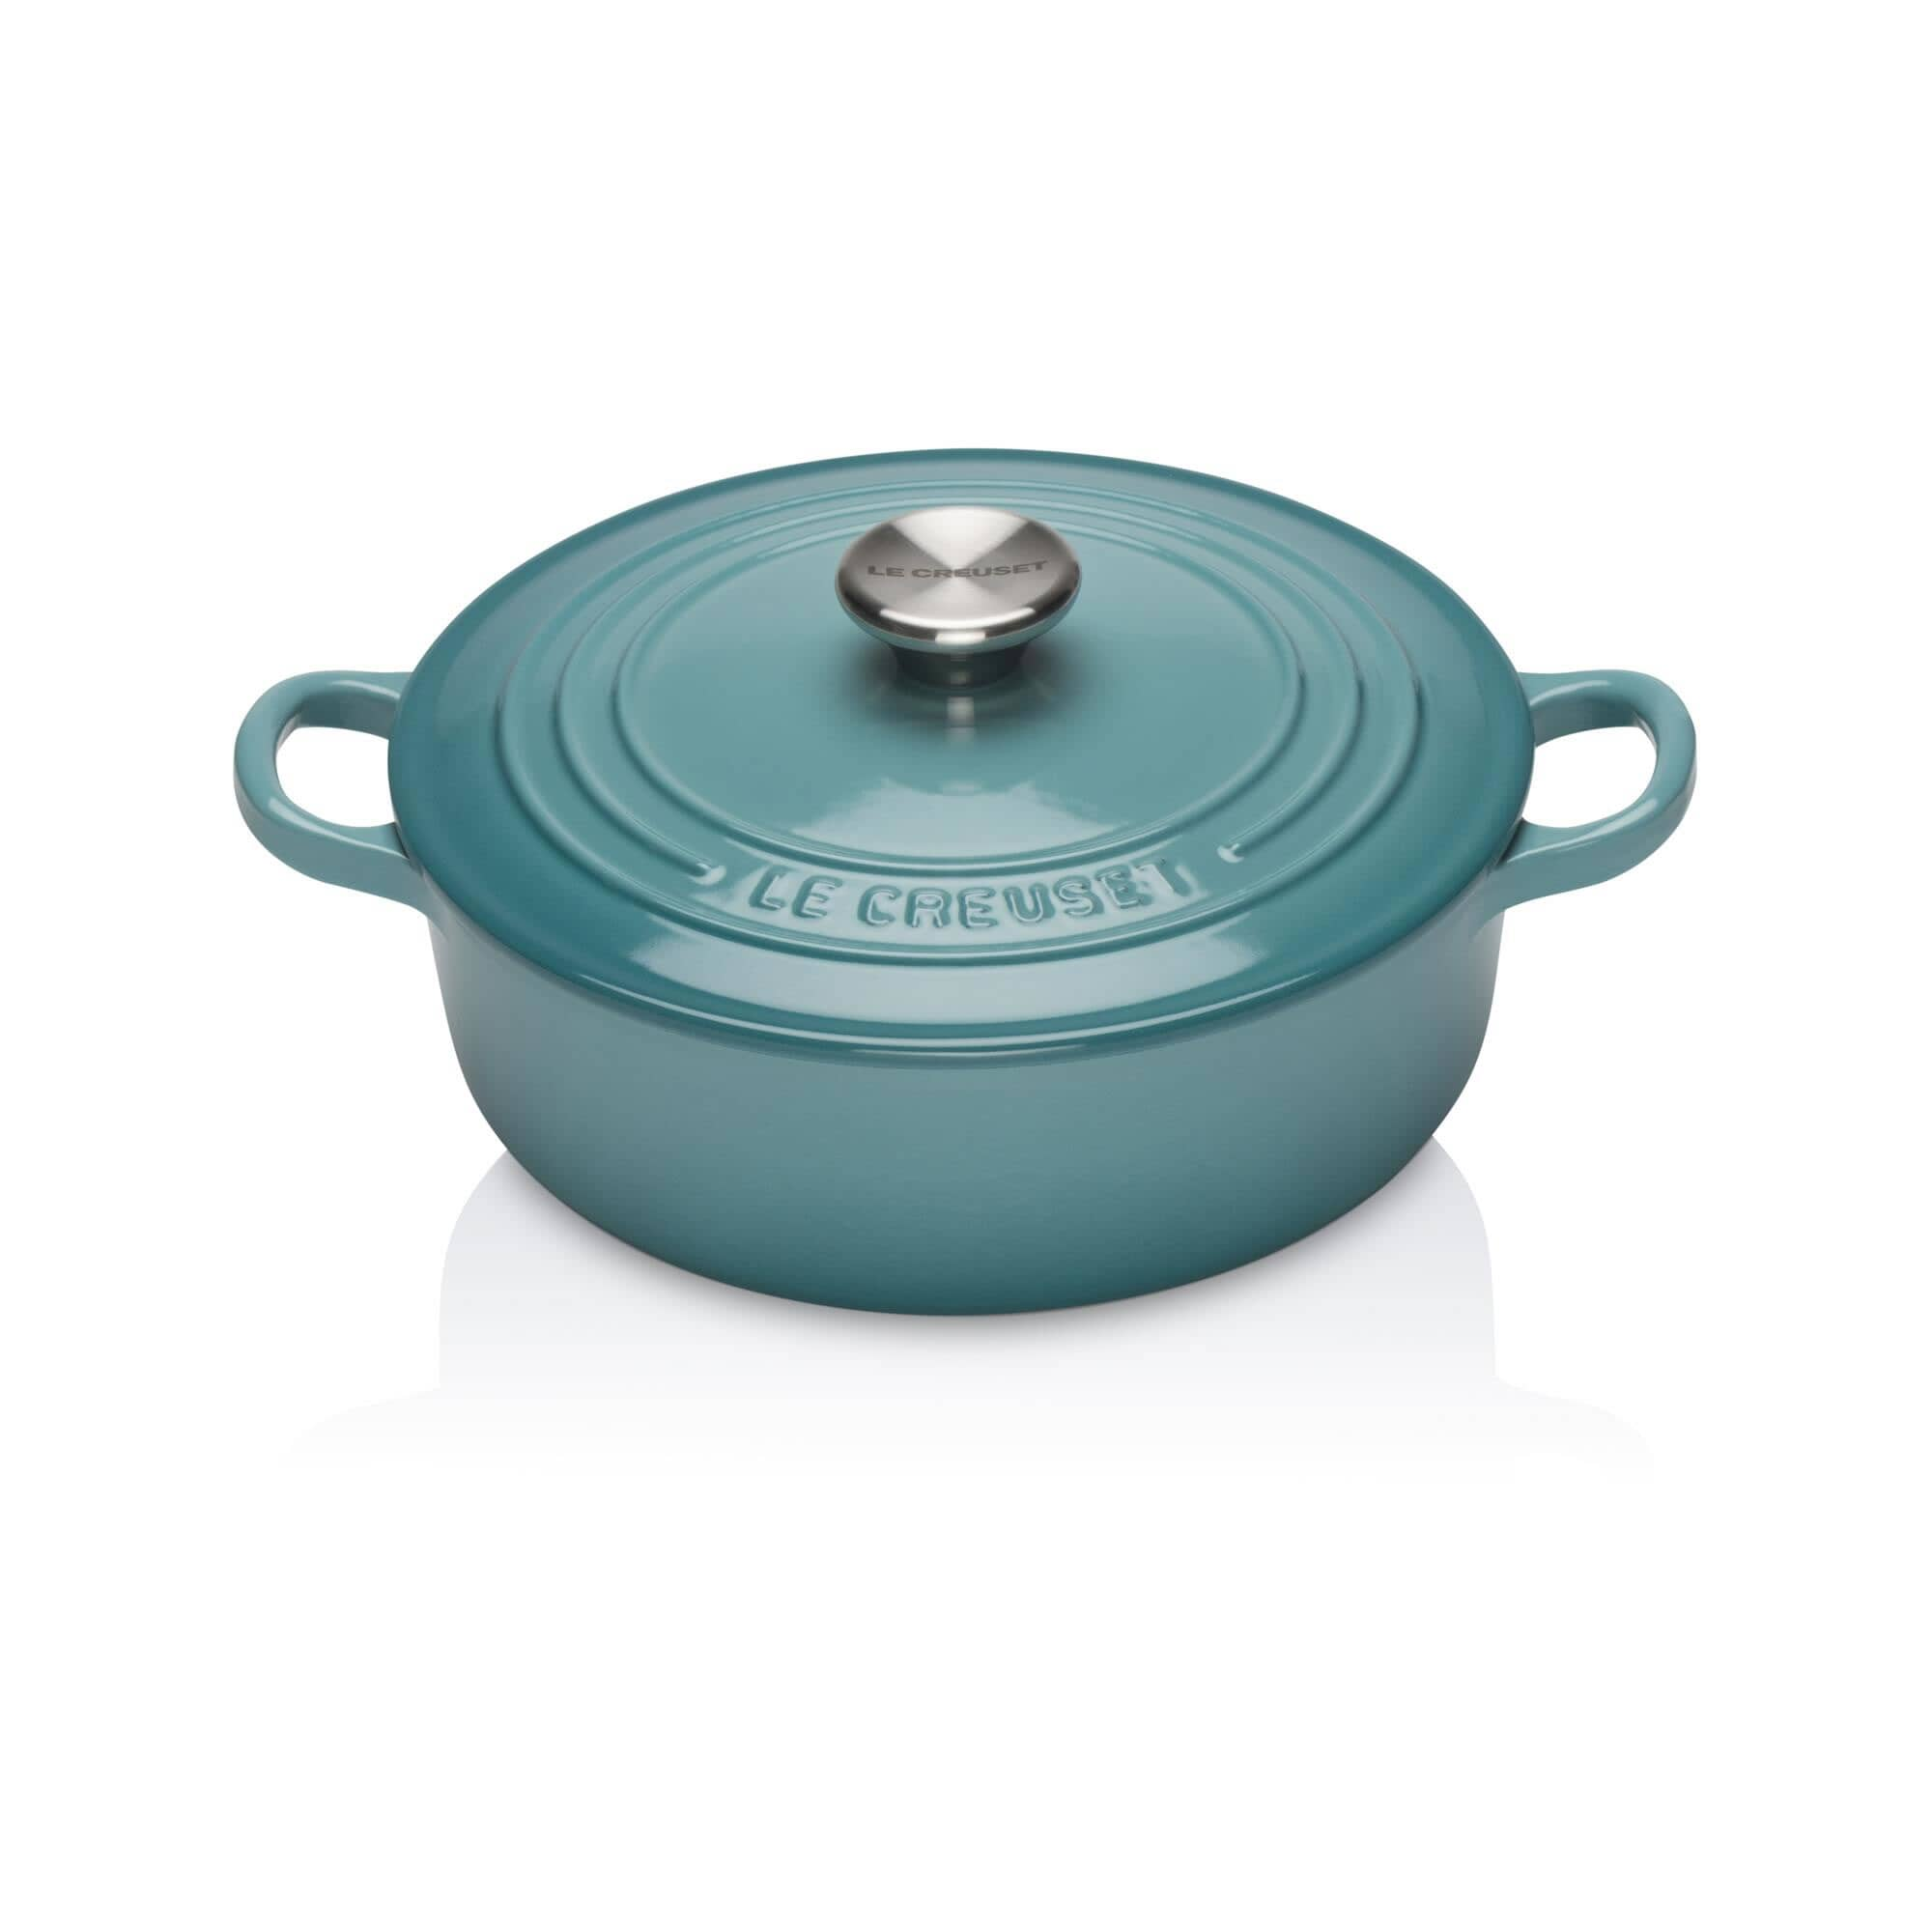 Le Creuset Cast Iron 22cm Risotto Pot Teal - (210522217) - eCookshop